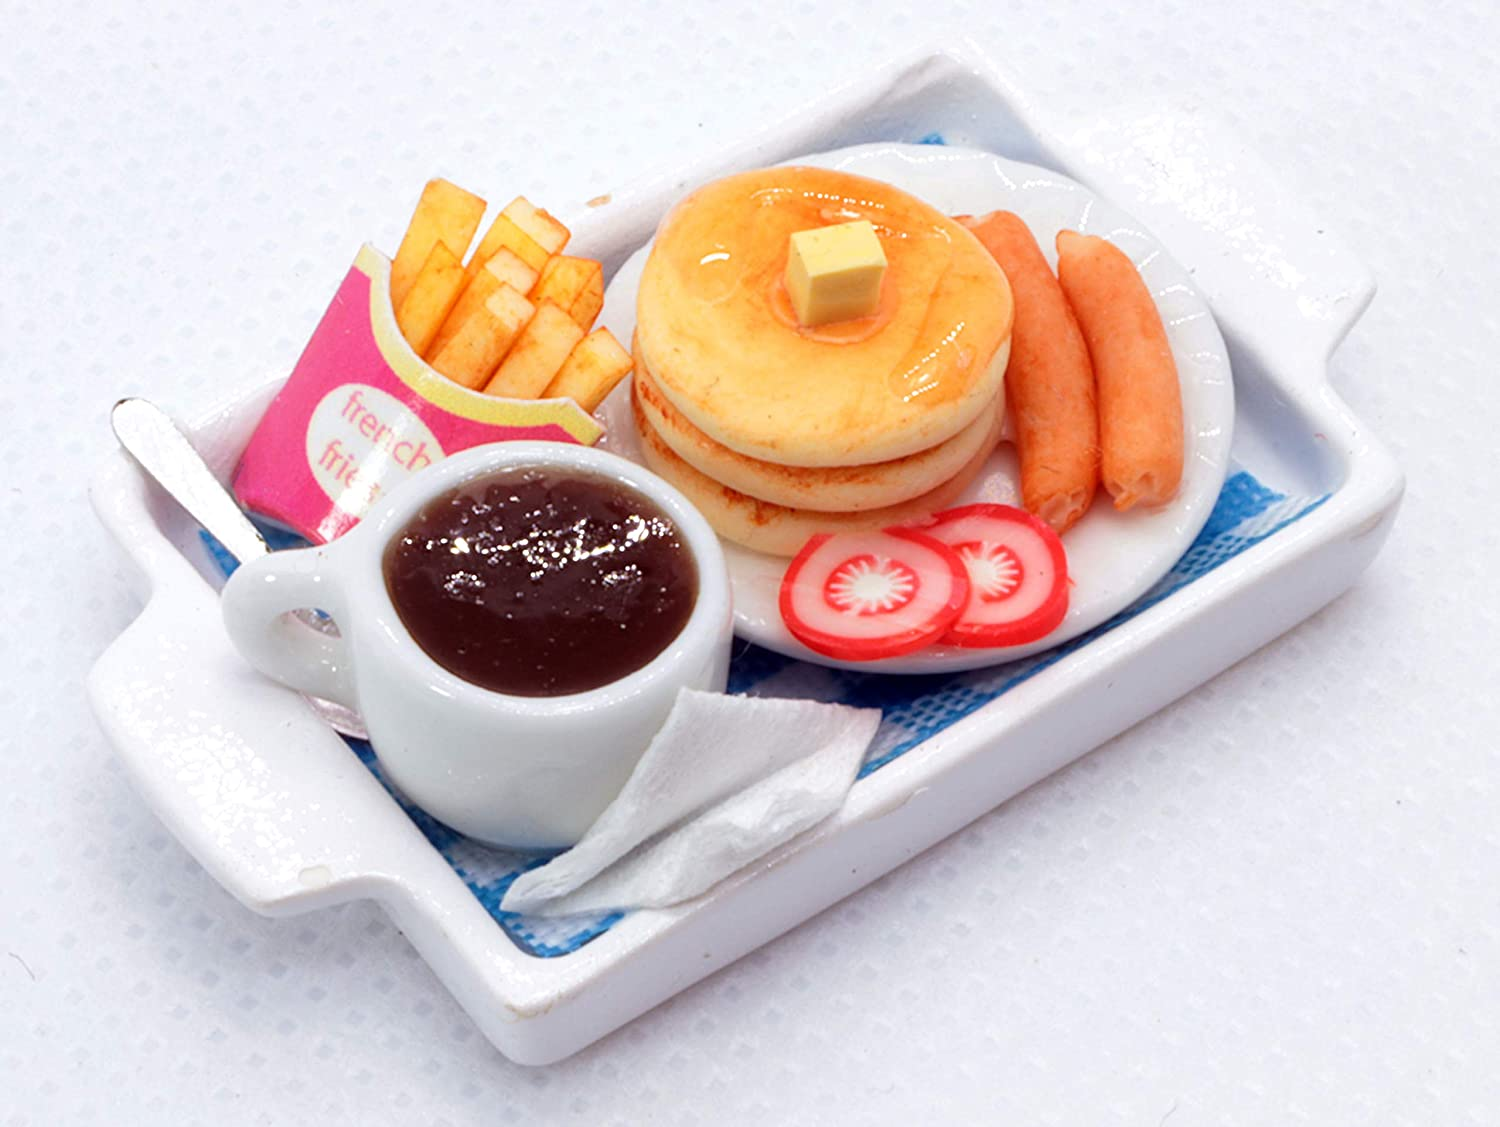 ThaiHonest Dollhouse Miniature Food Set Pancake with Sausage,French Fries and Coffee ,Tiny Food Collectibles